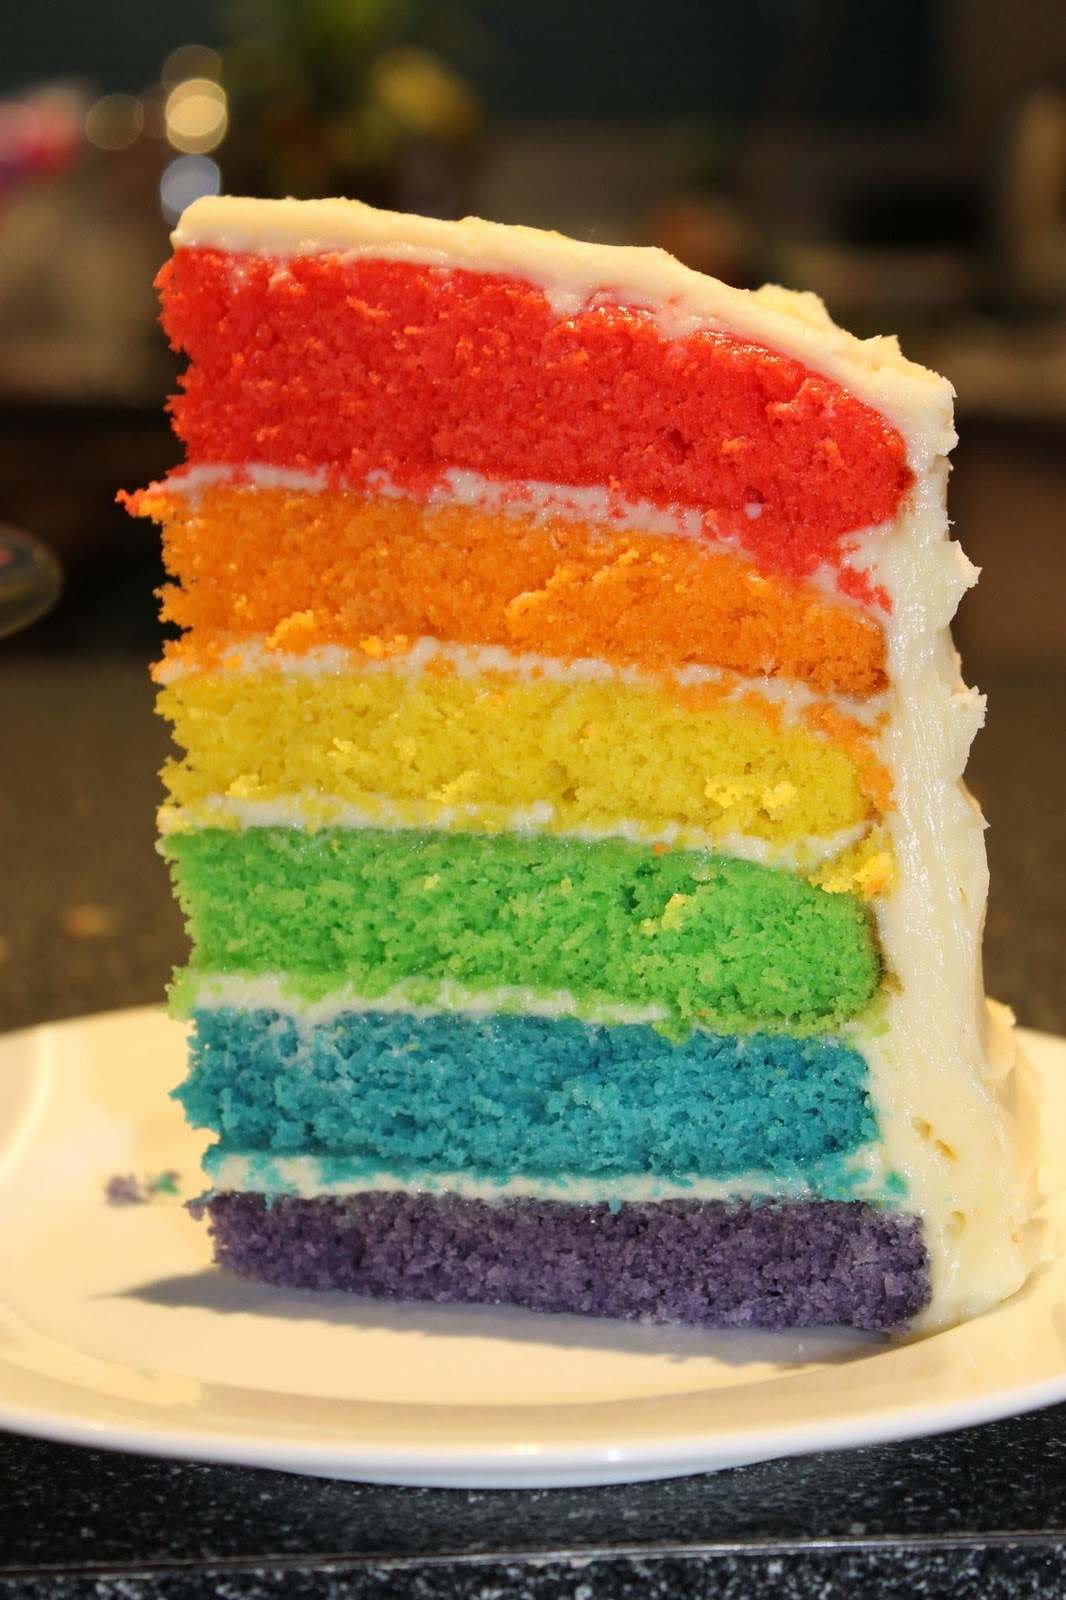 Sweetie Darling A Lovely Rainbow Cake And White Chocolate Cream